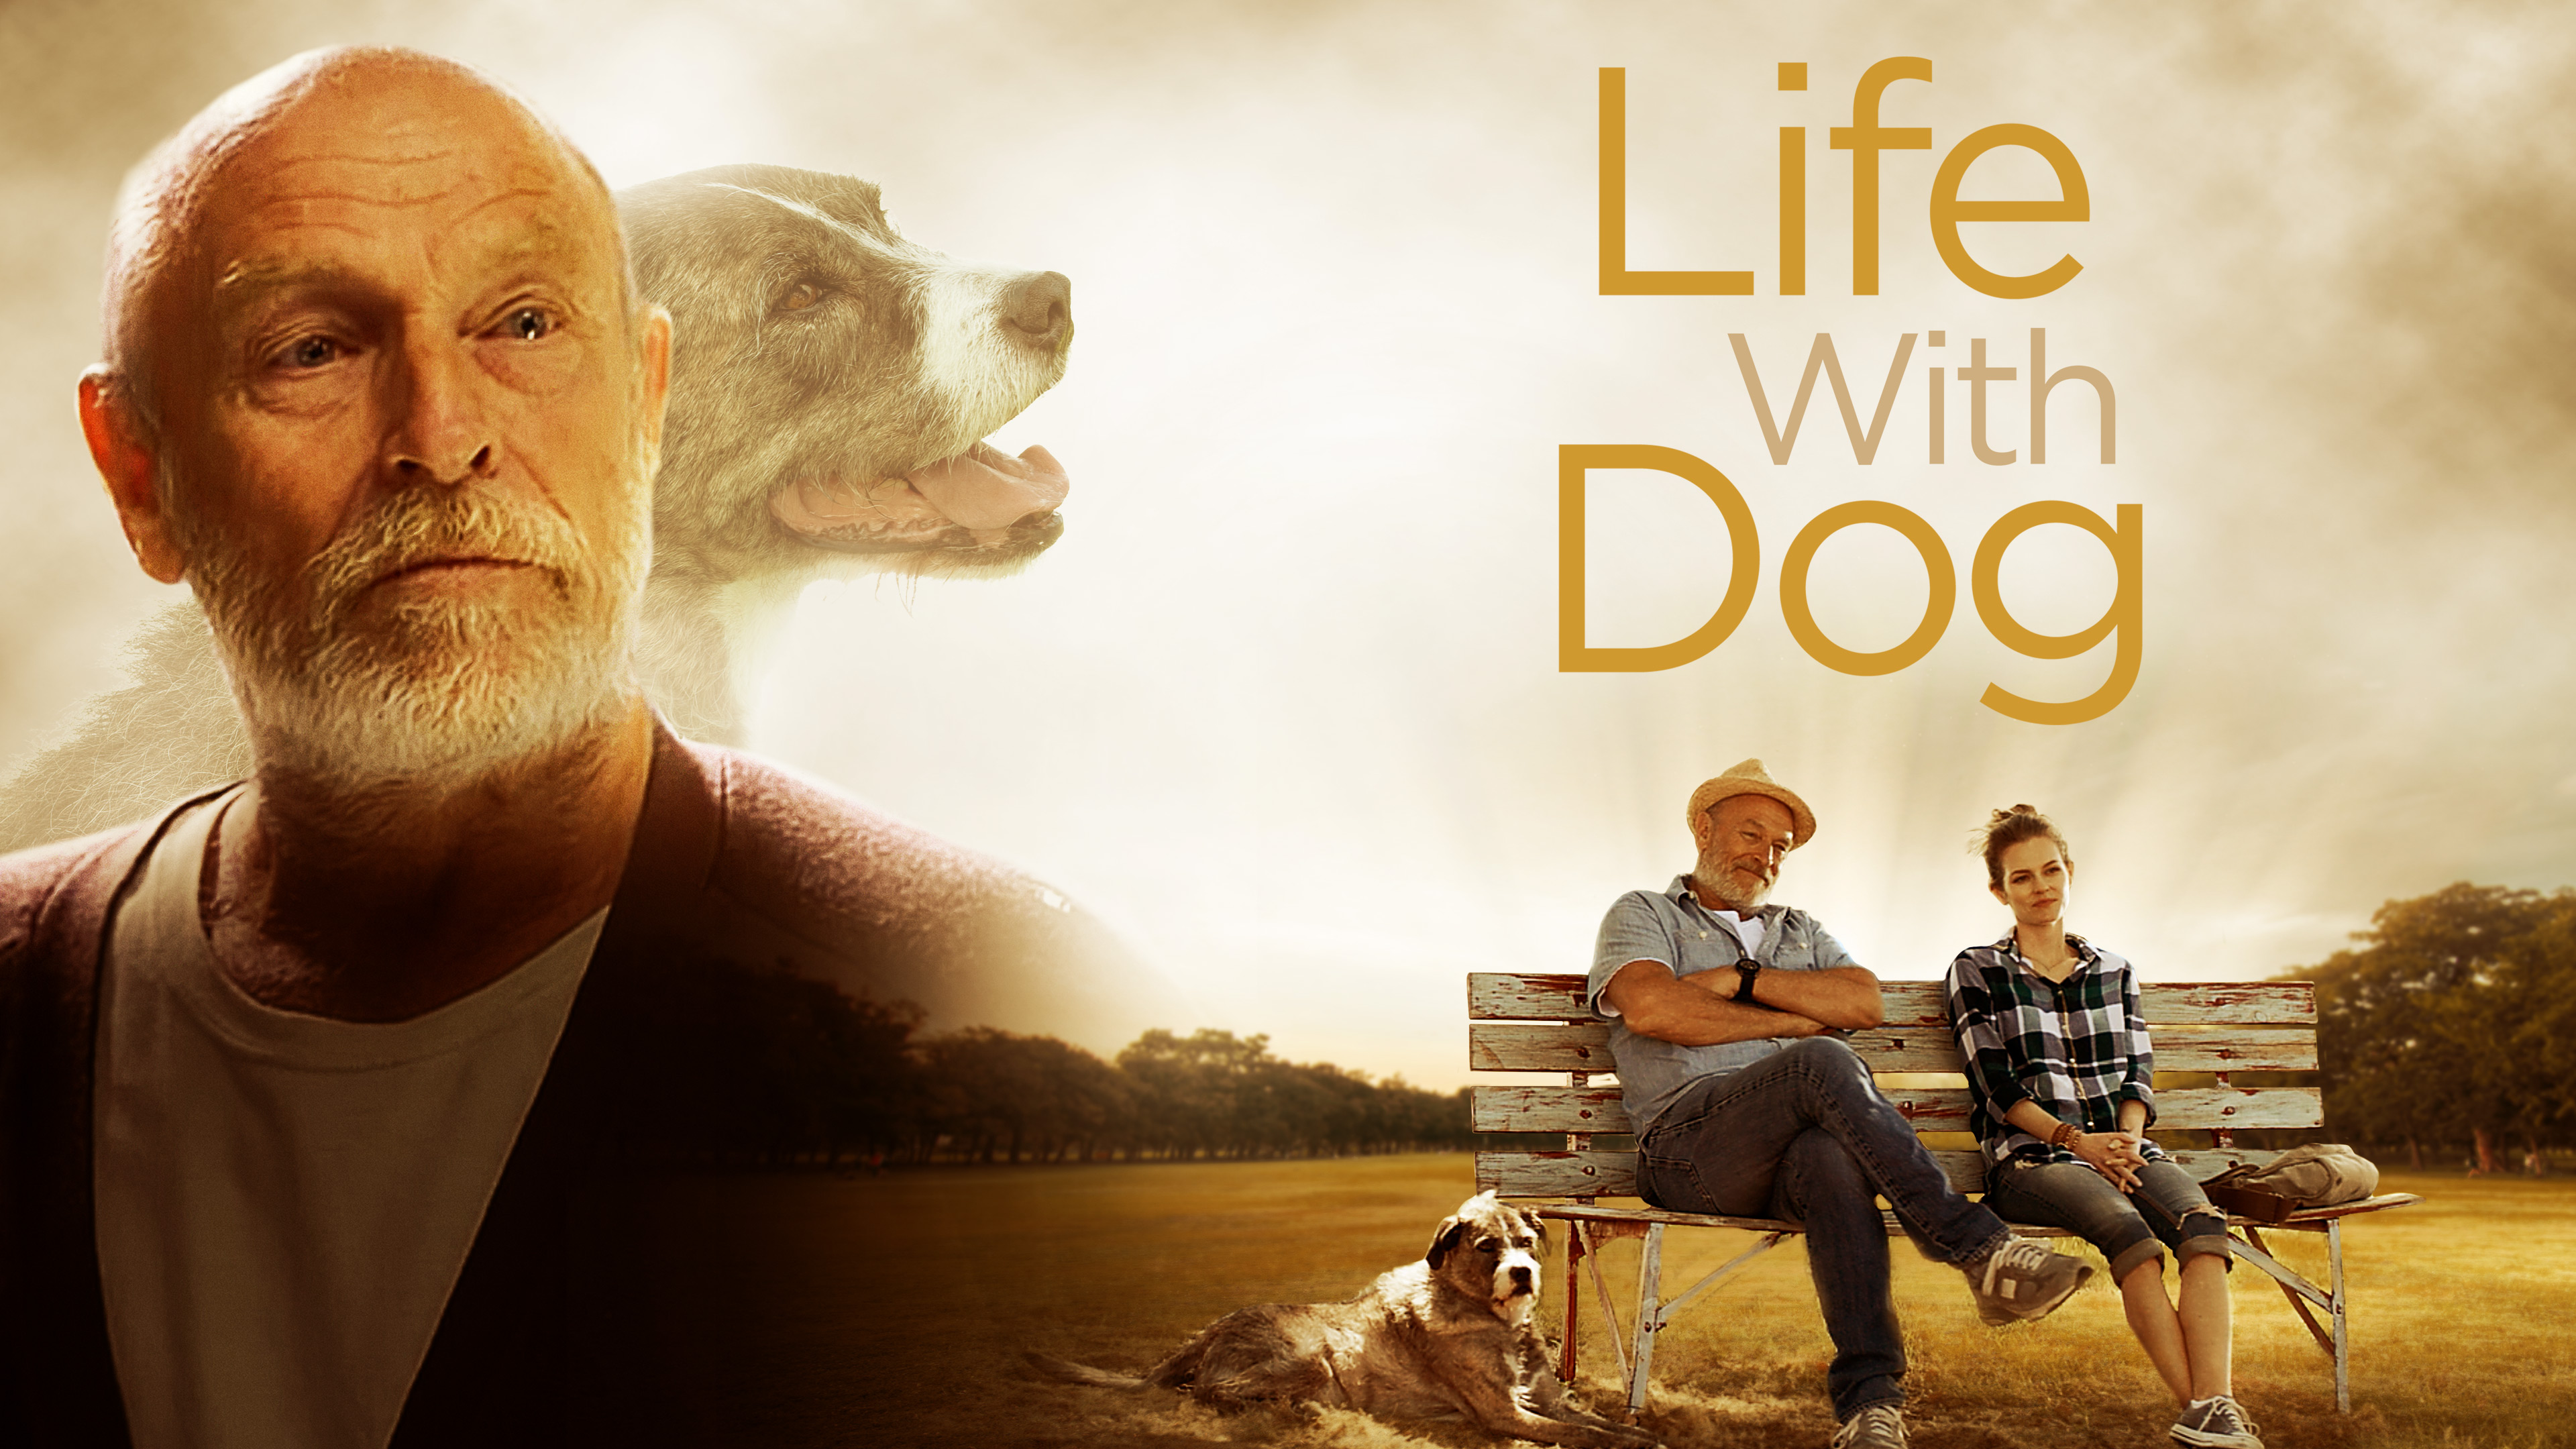 Life With Dog Trailer